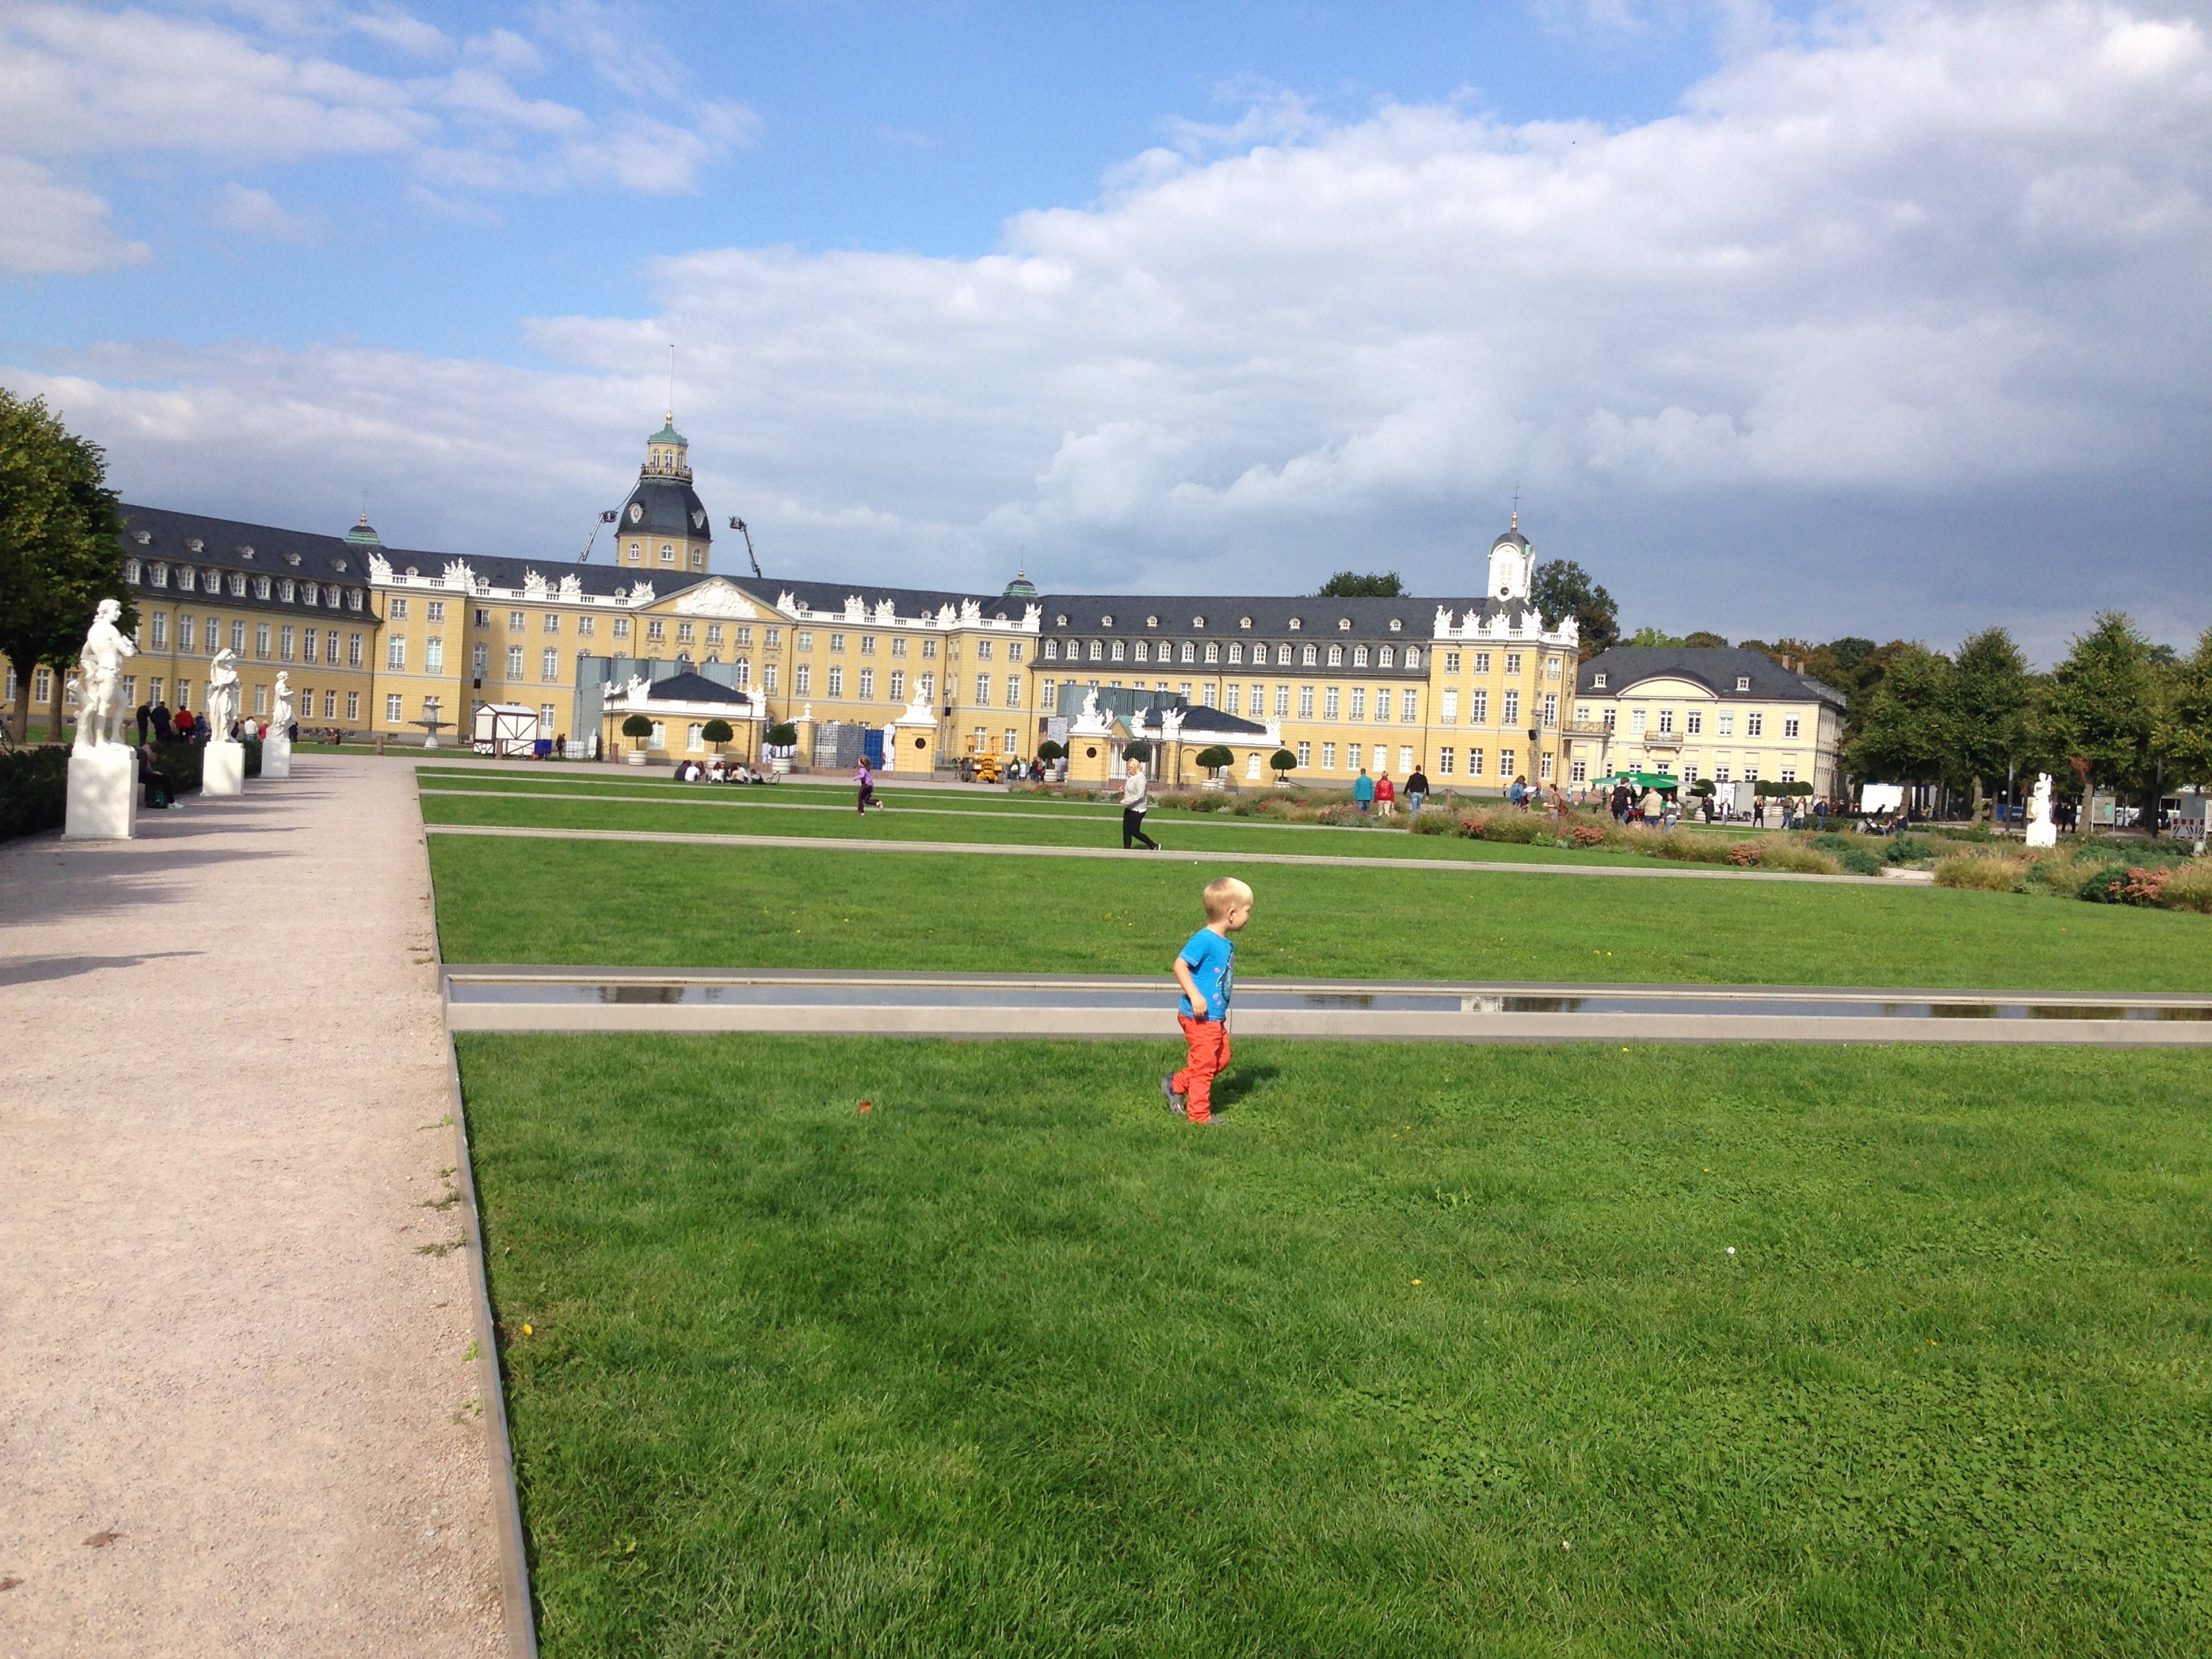 james running in front of karlsruhe palace